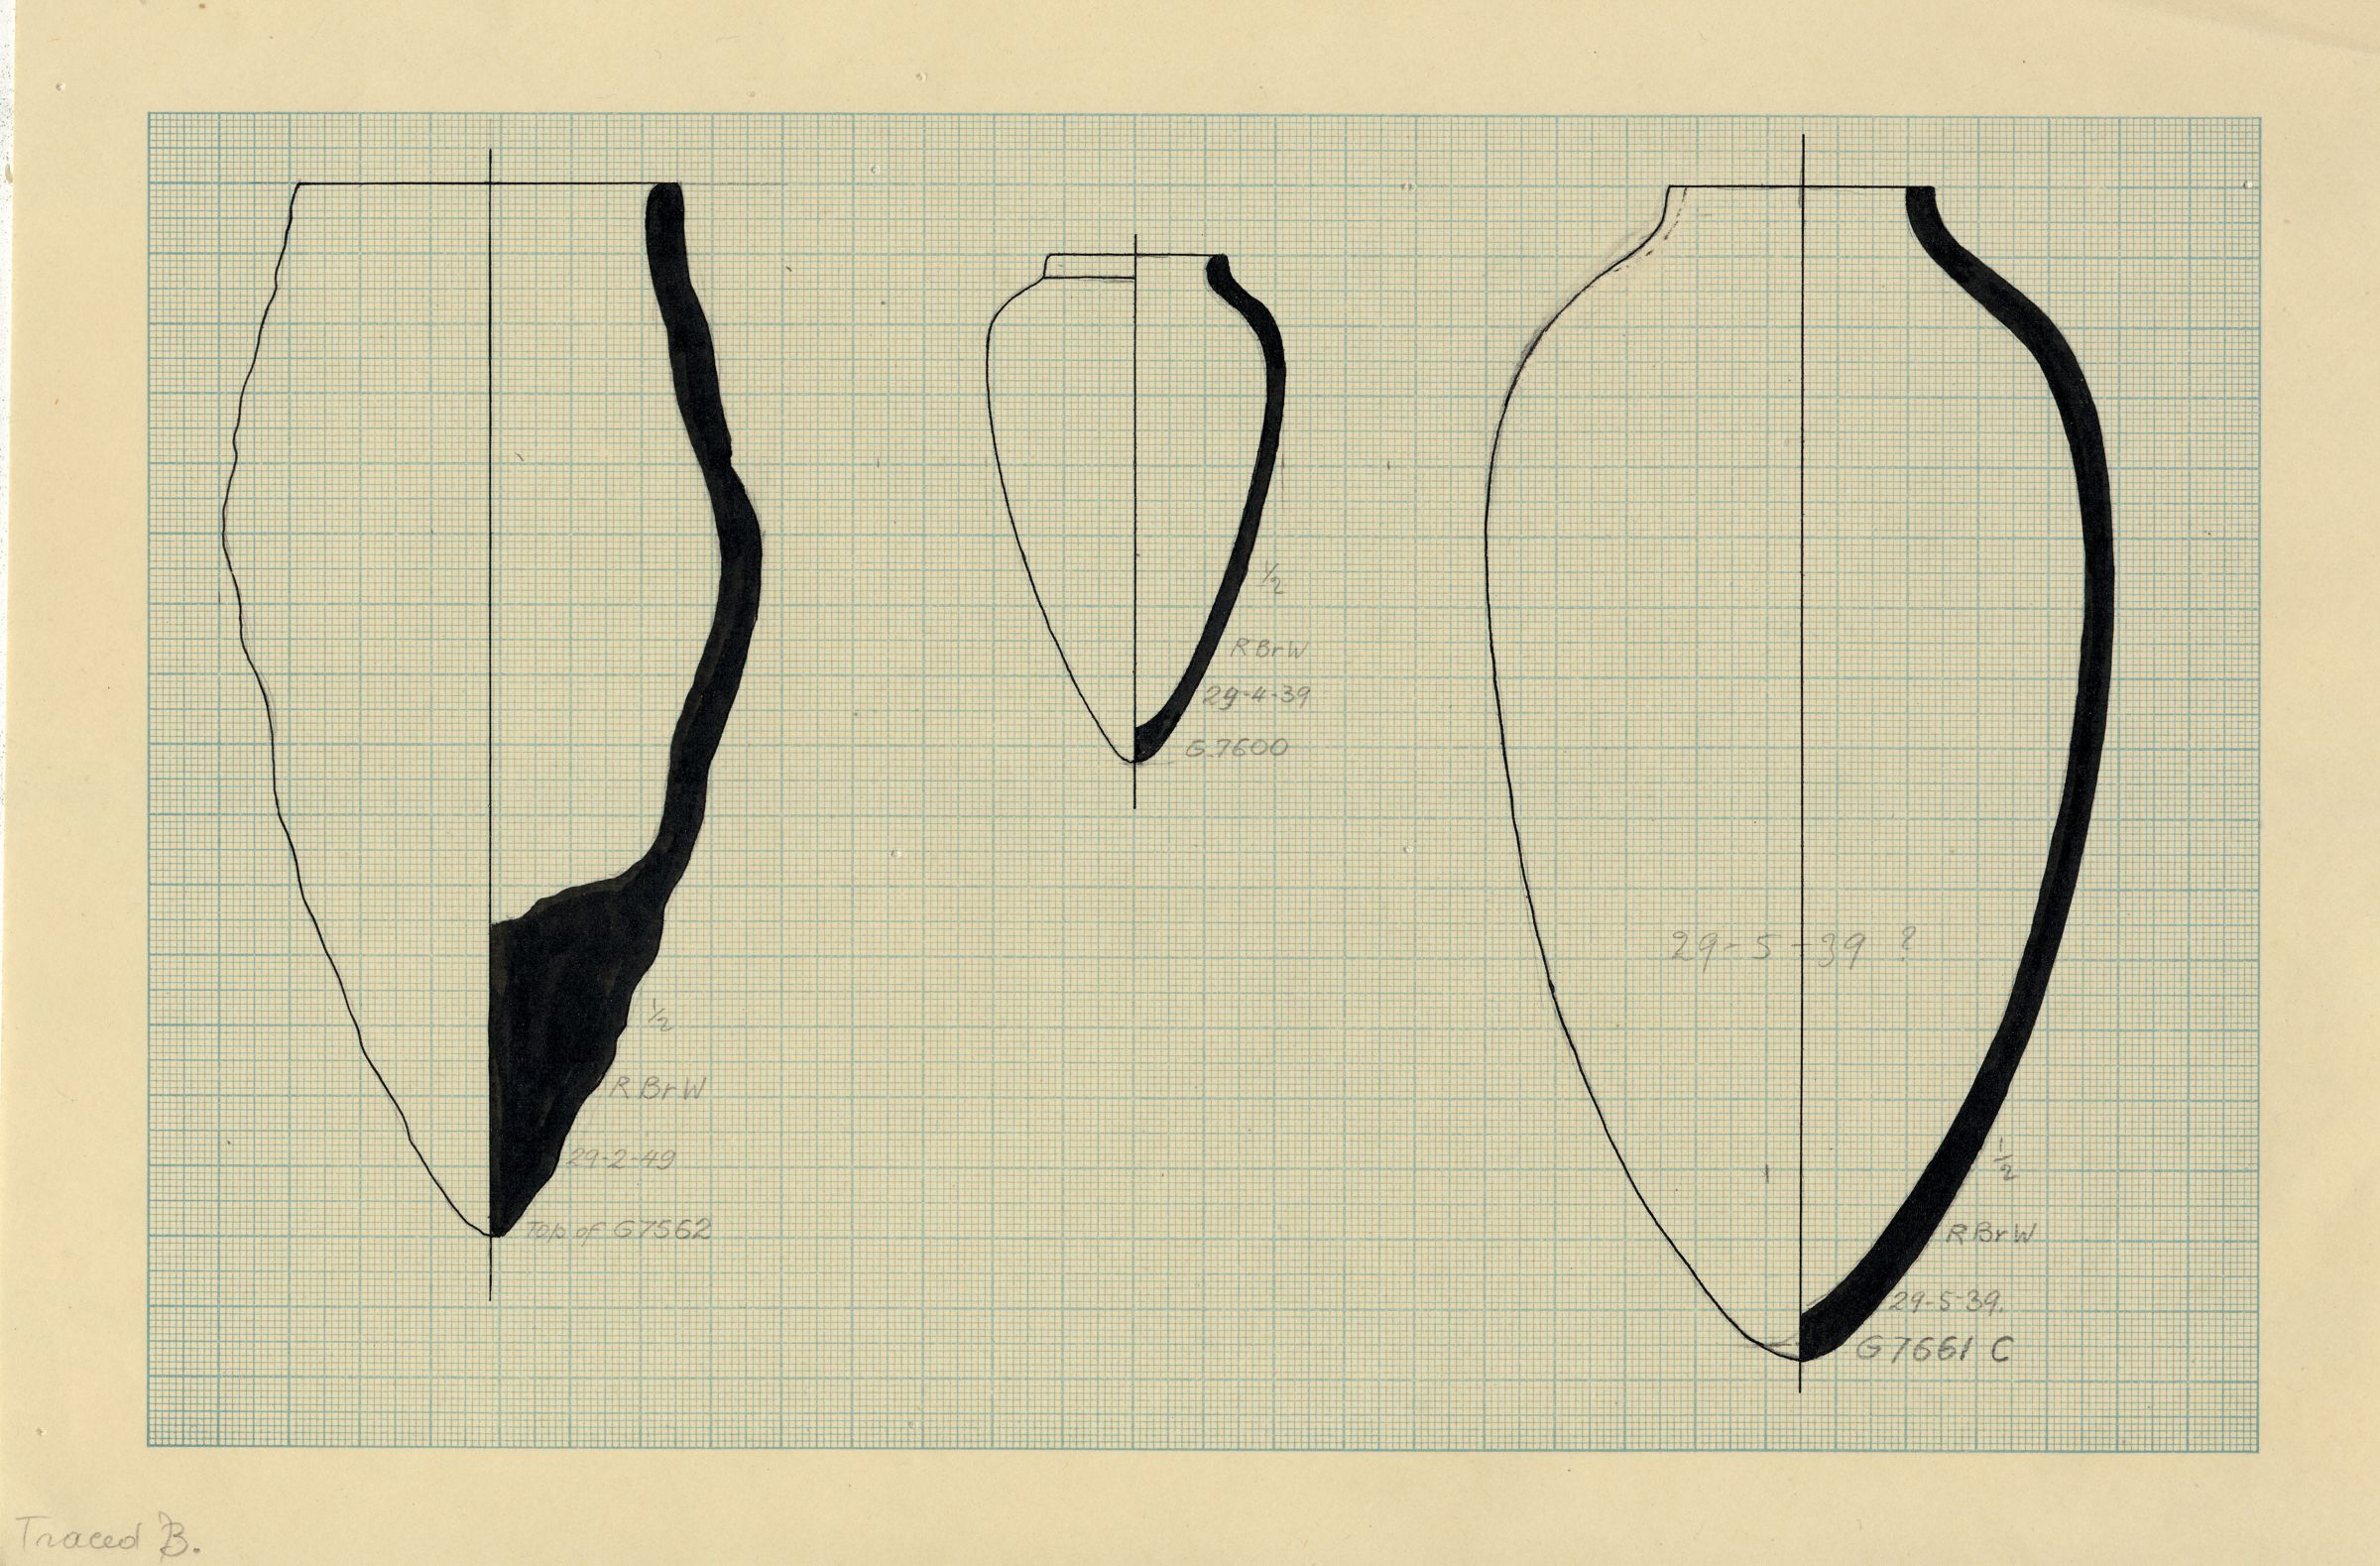 Drawings: Pottery, jars from G 7652, G 7600, Shaft X, G 7661, Shaft C